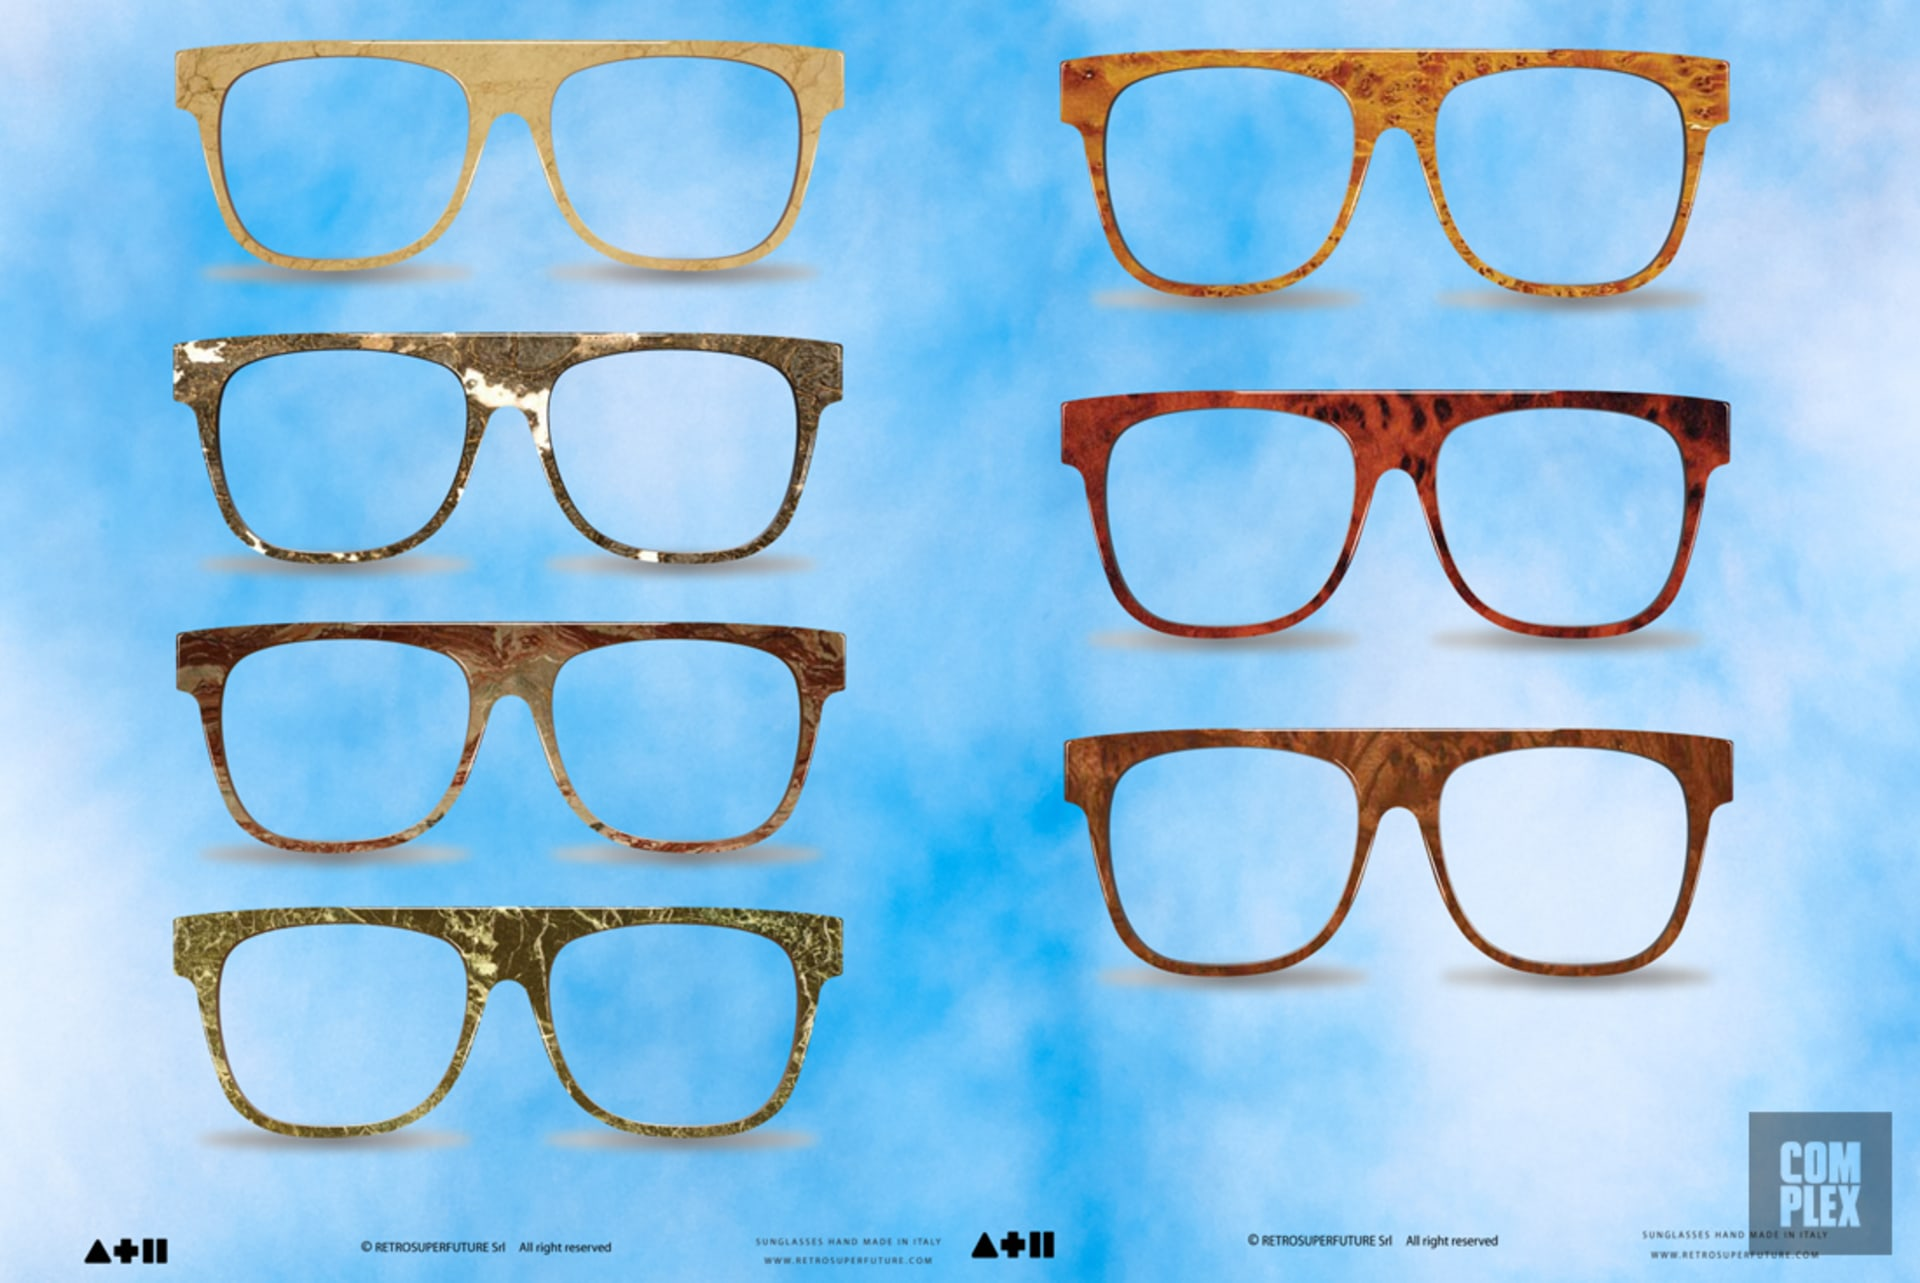 372835c457bf Samples of Pastelle sunglasses designed by Retrosuperfuture